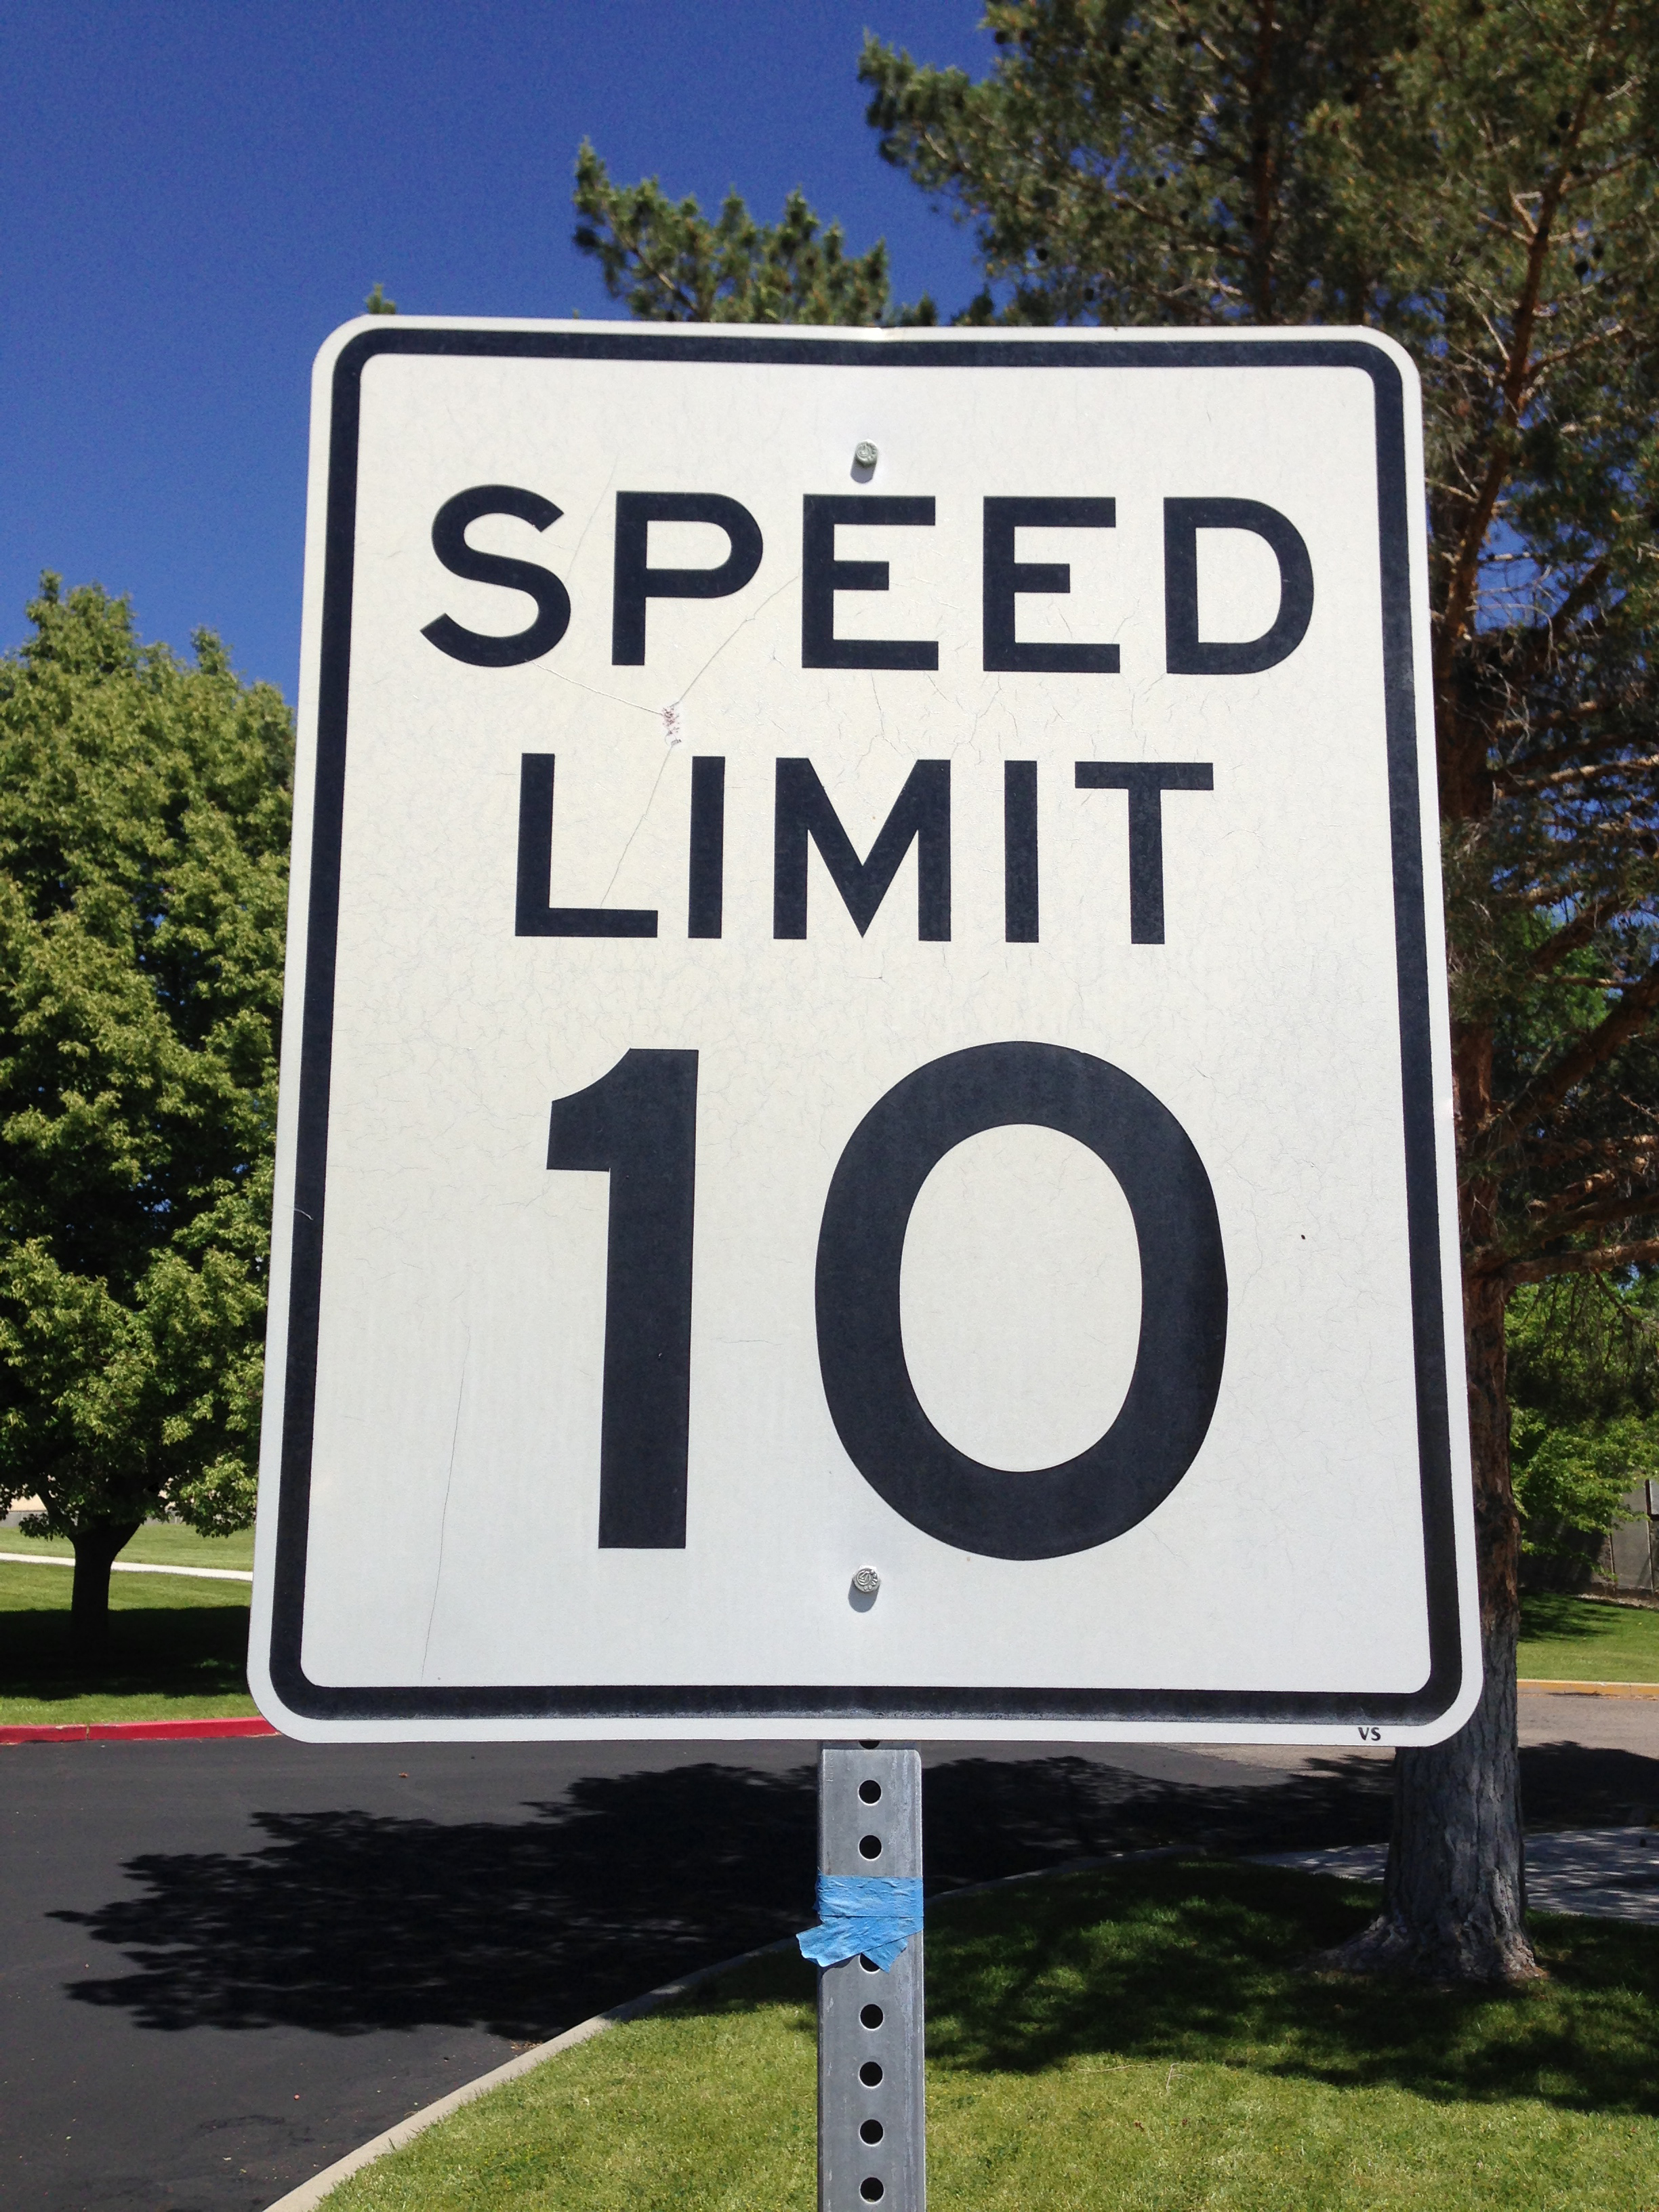 File:2014-06-13 11 01 08 A 10 miles-per-hour speed limit sign in ...